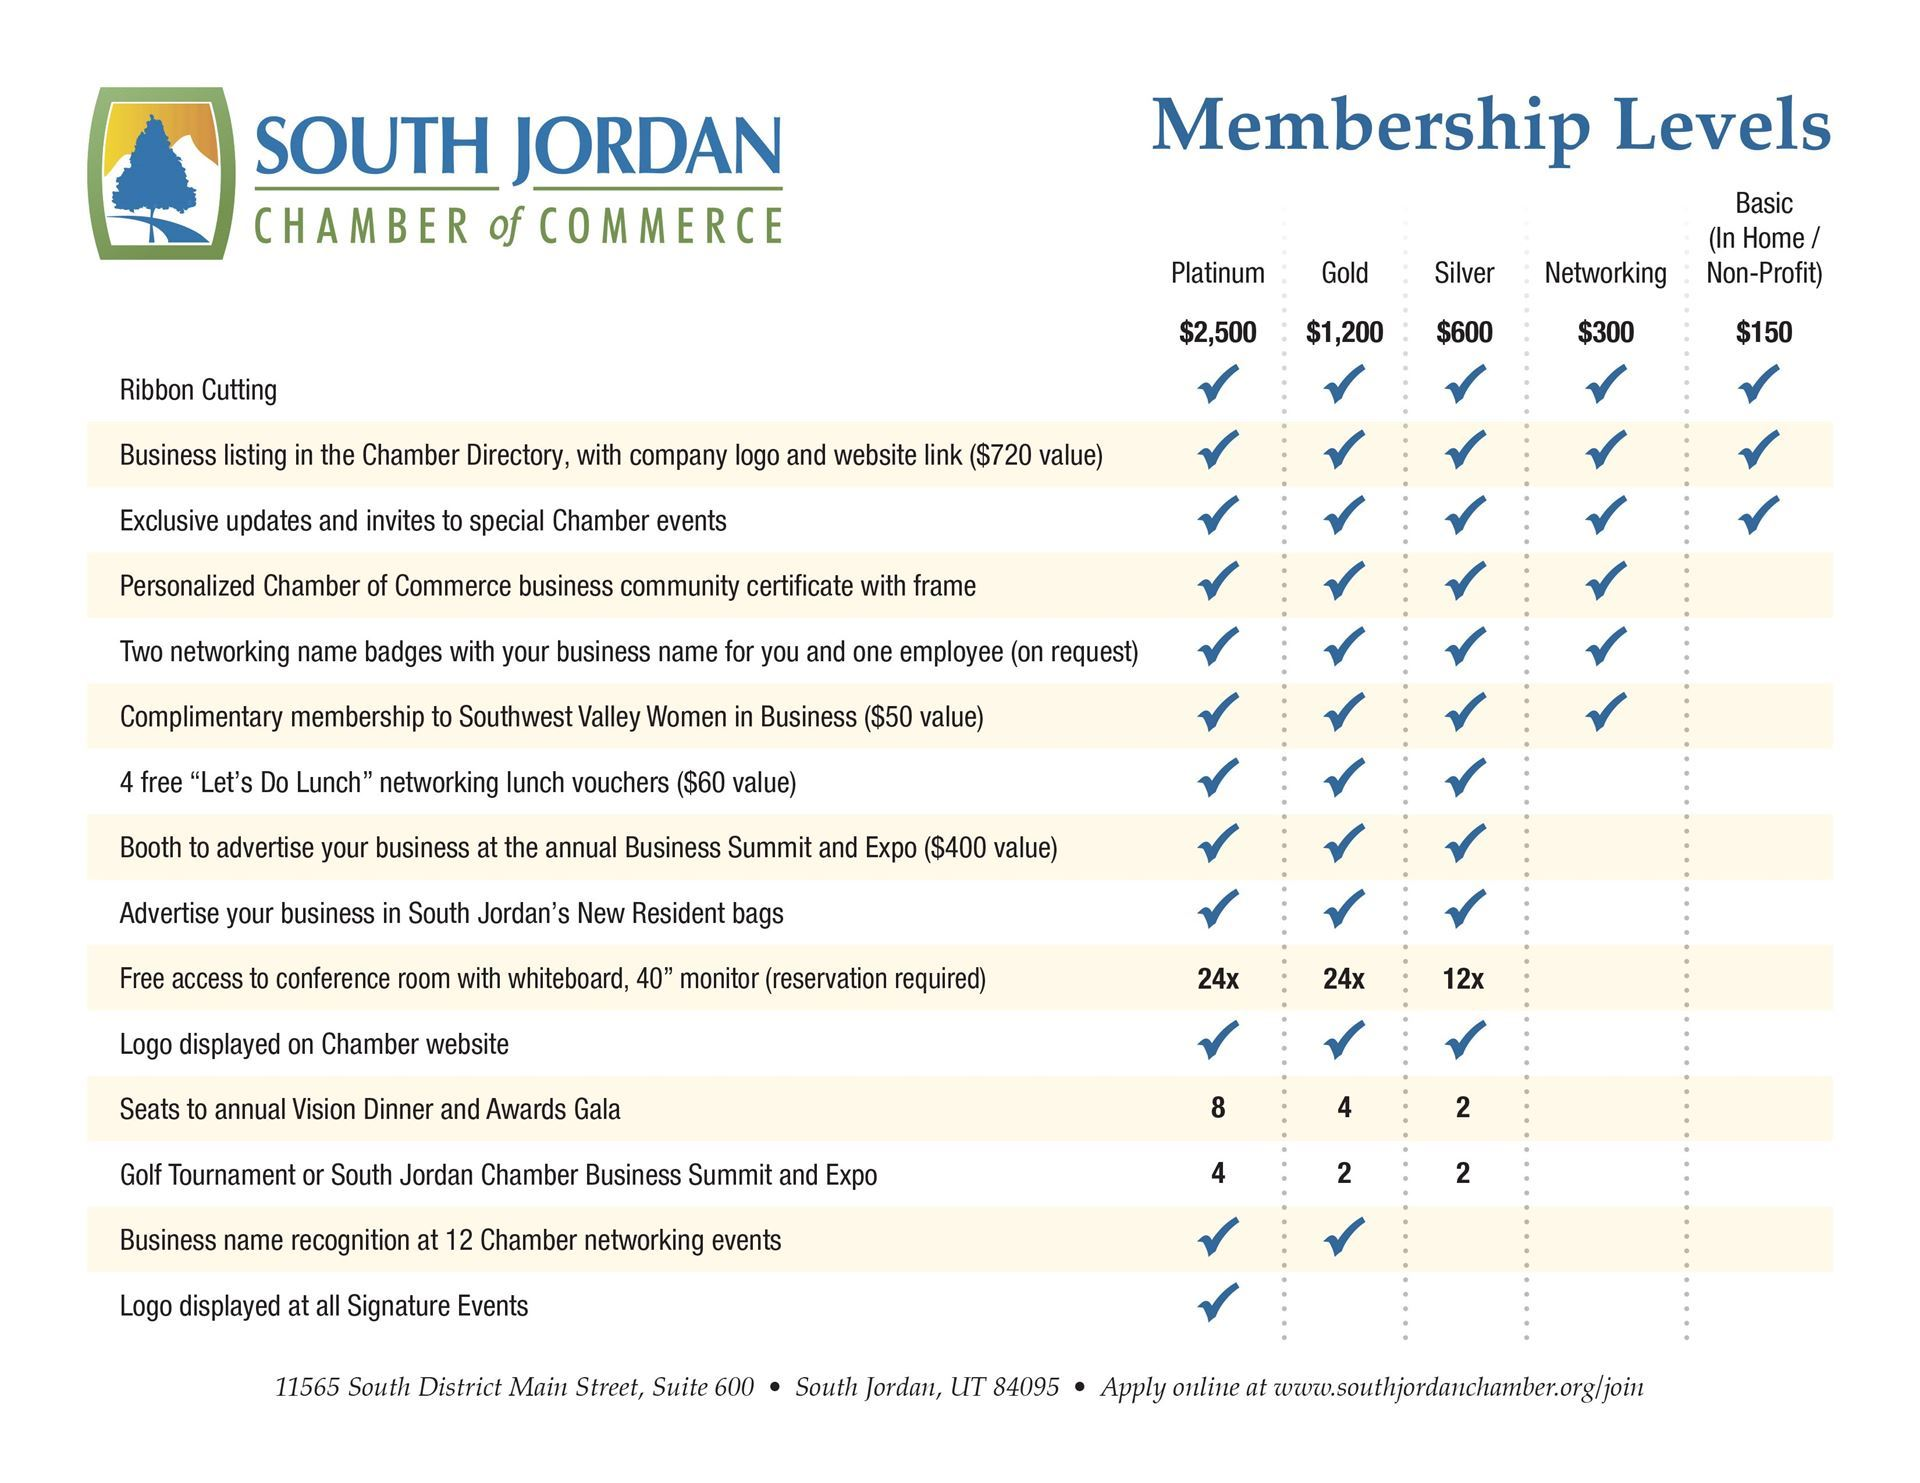 South Jordan Chamber Of Commerce